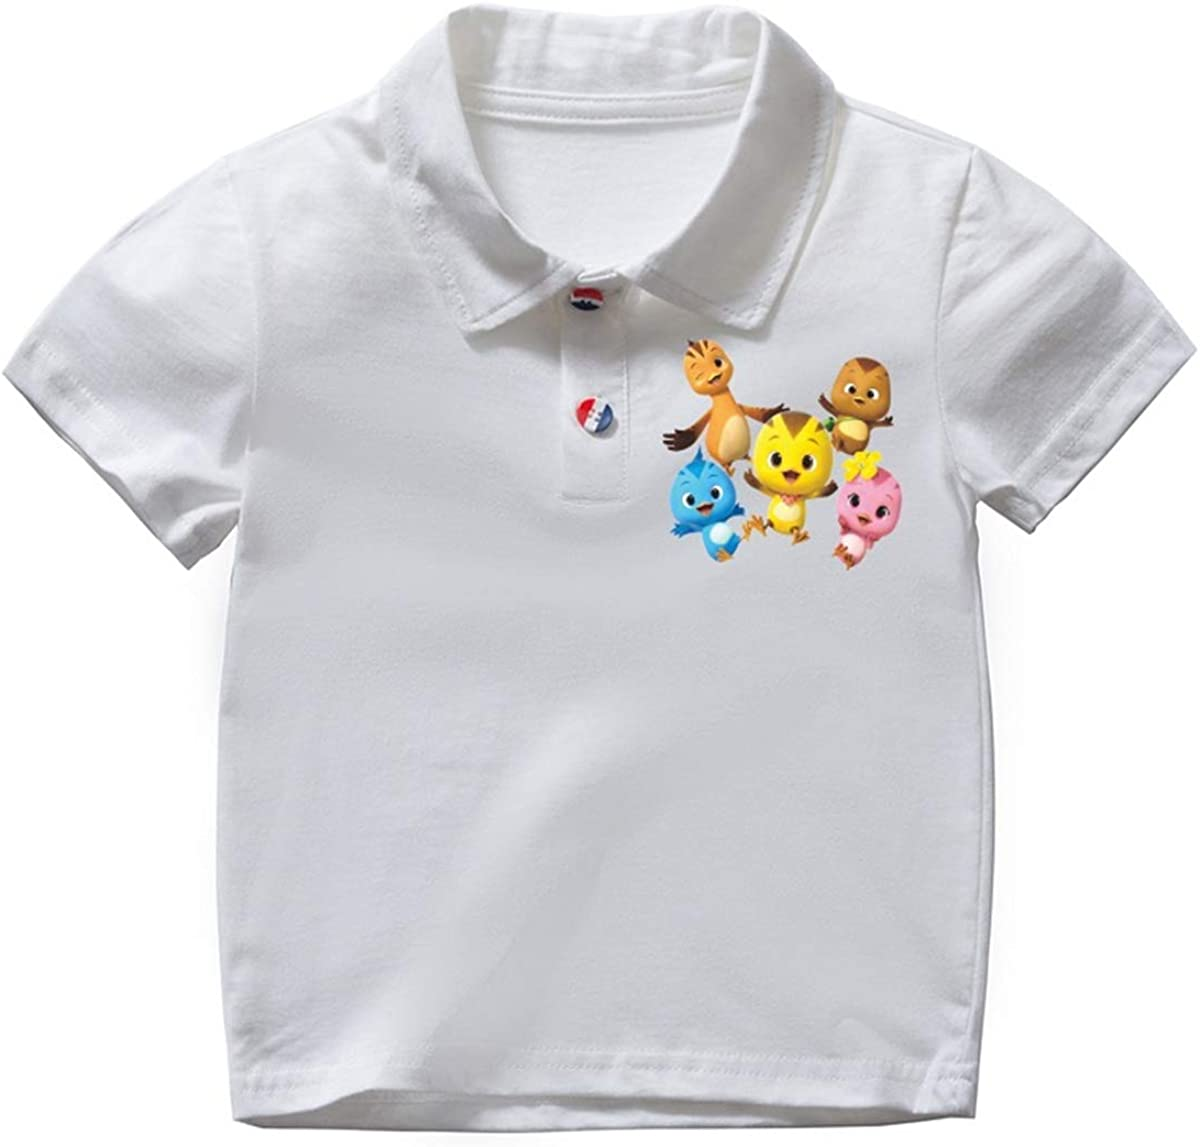 Fashion-zone Chick Chicken Summer Casual T-Shirts for Boys Girls Toddler Short-Sleeve Polo Shirt